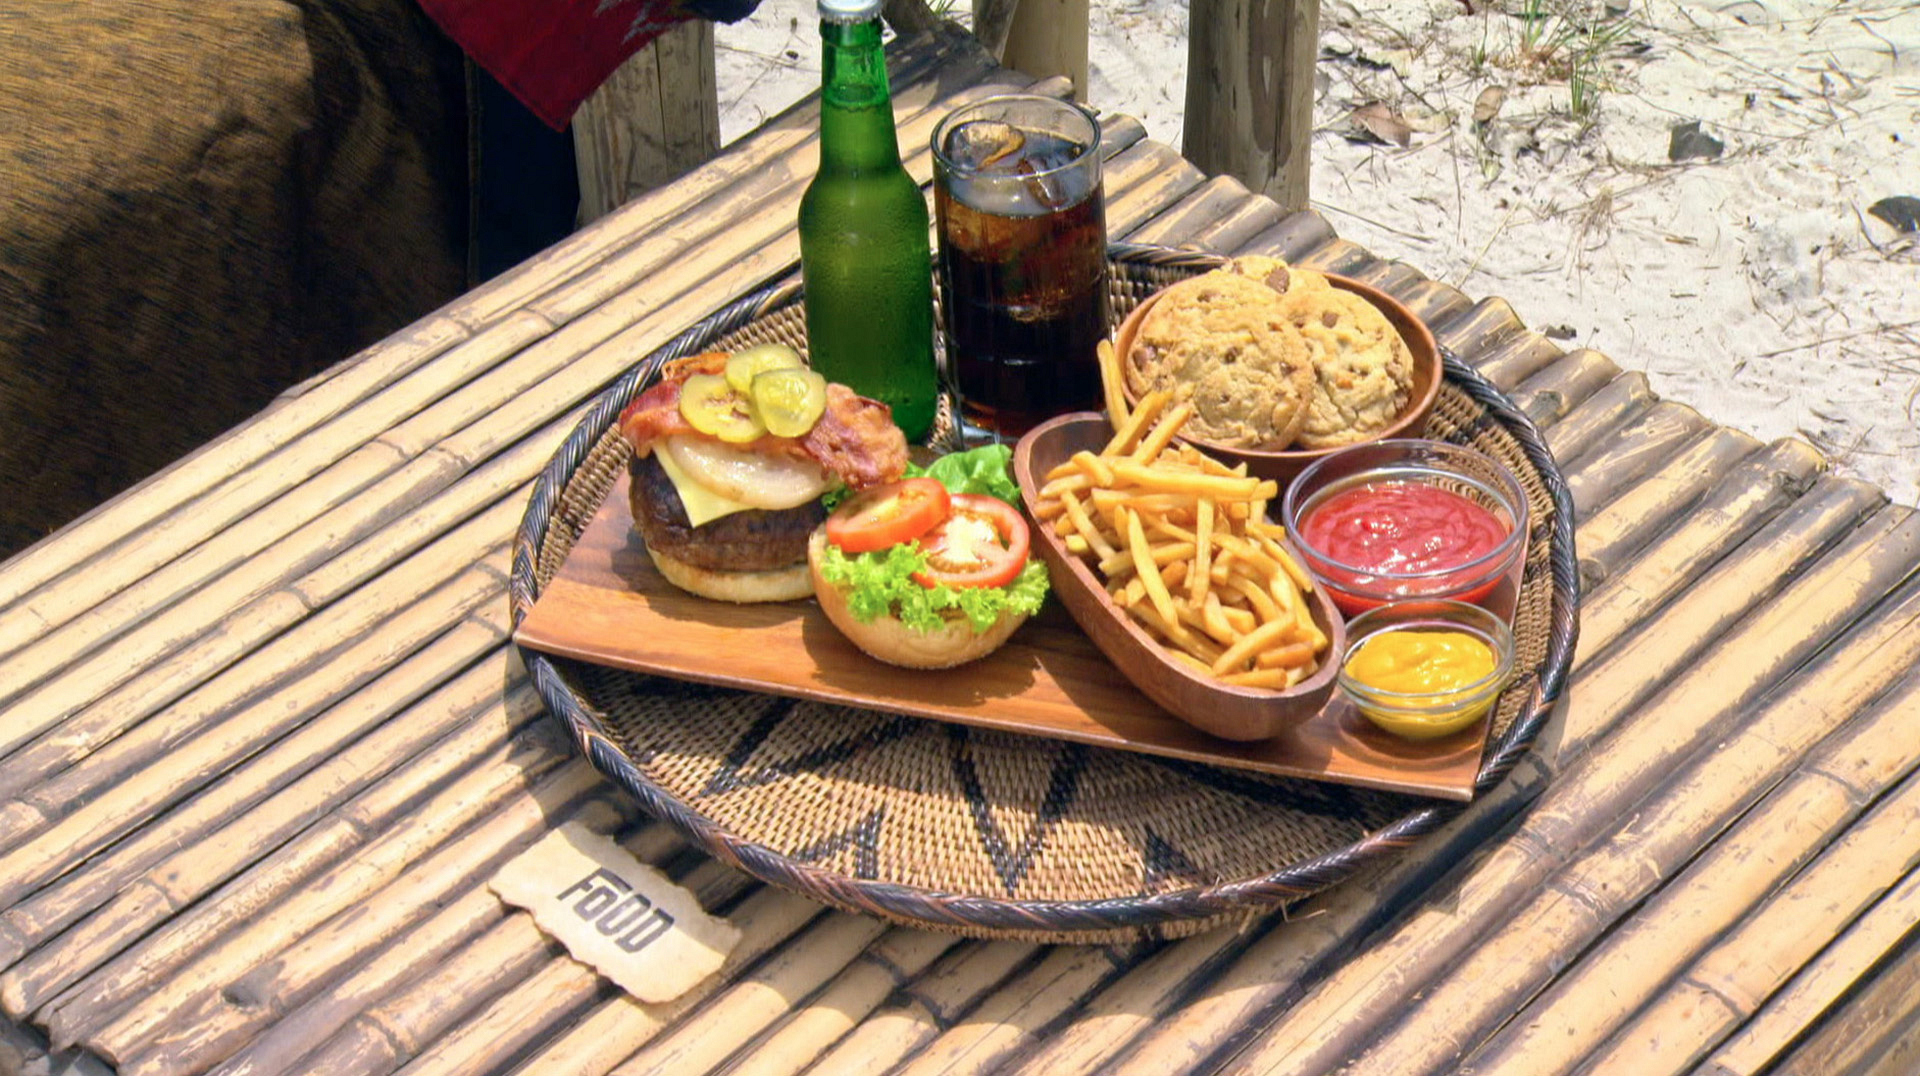 One of the rewards includes a juicy burger, fries, cookie, and ice-cold beer.